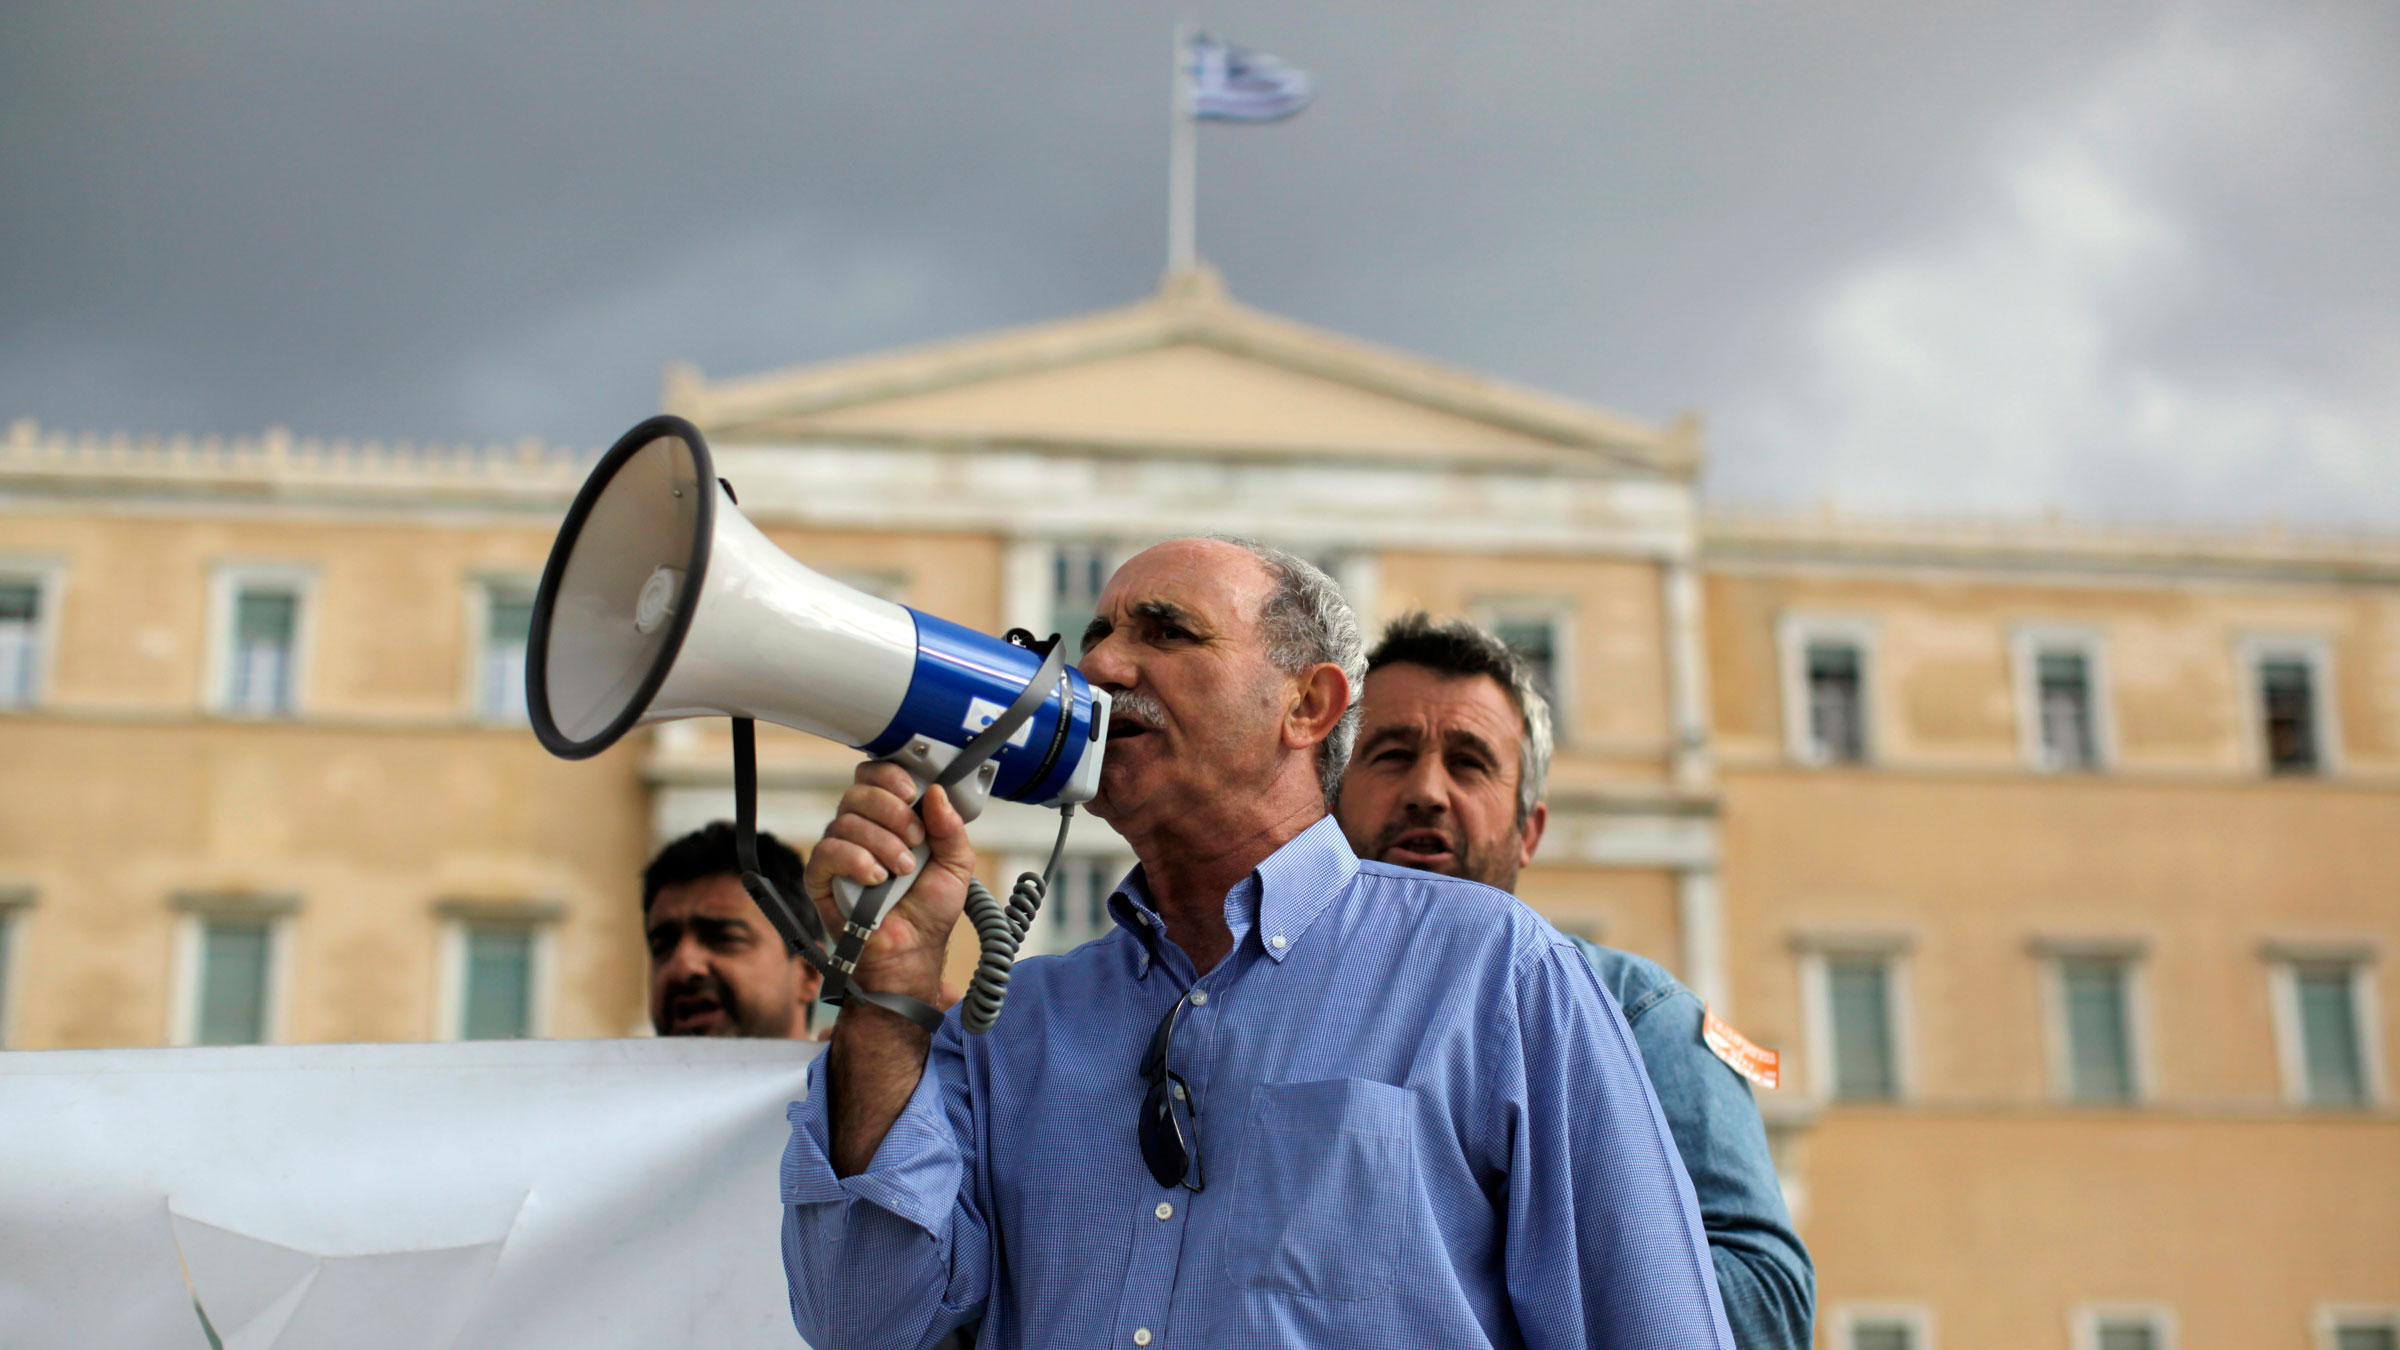 Protesting in front of the Greek Parliament